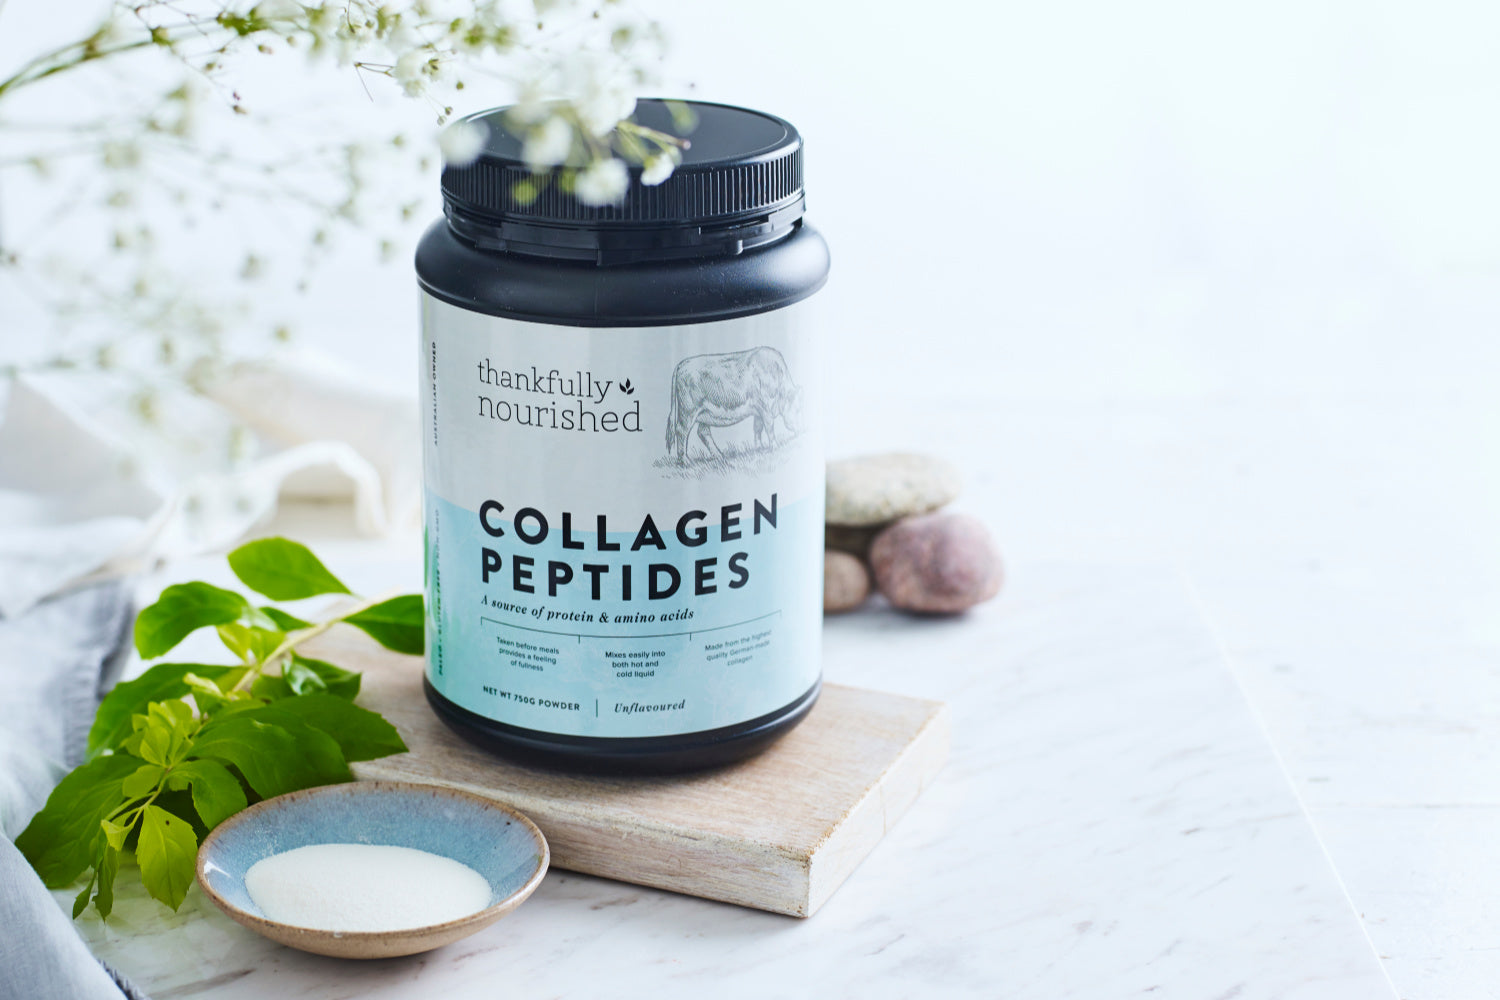 How Thankfully Nourished Collagen Peptides  is different from other collagens